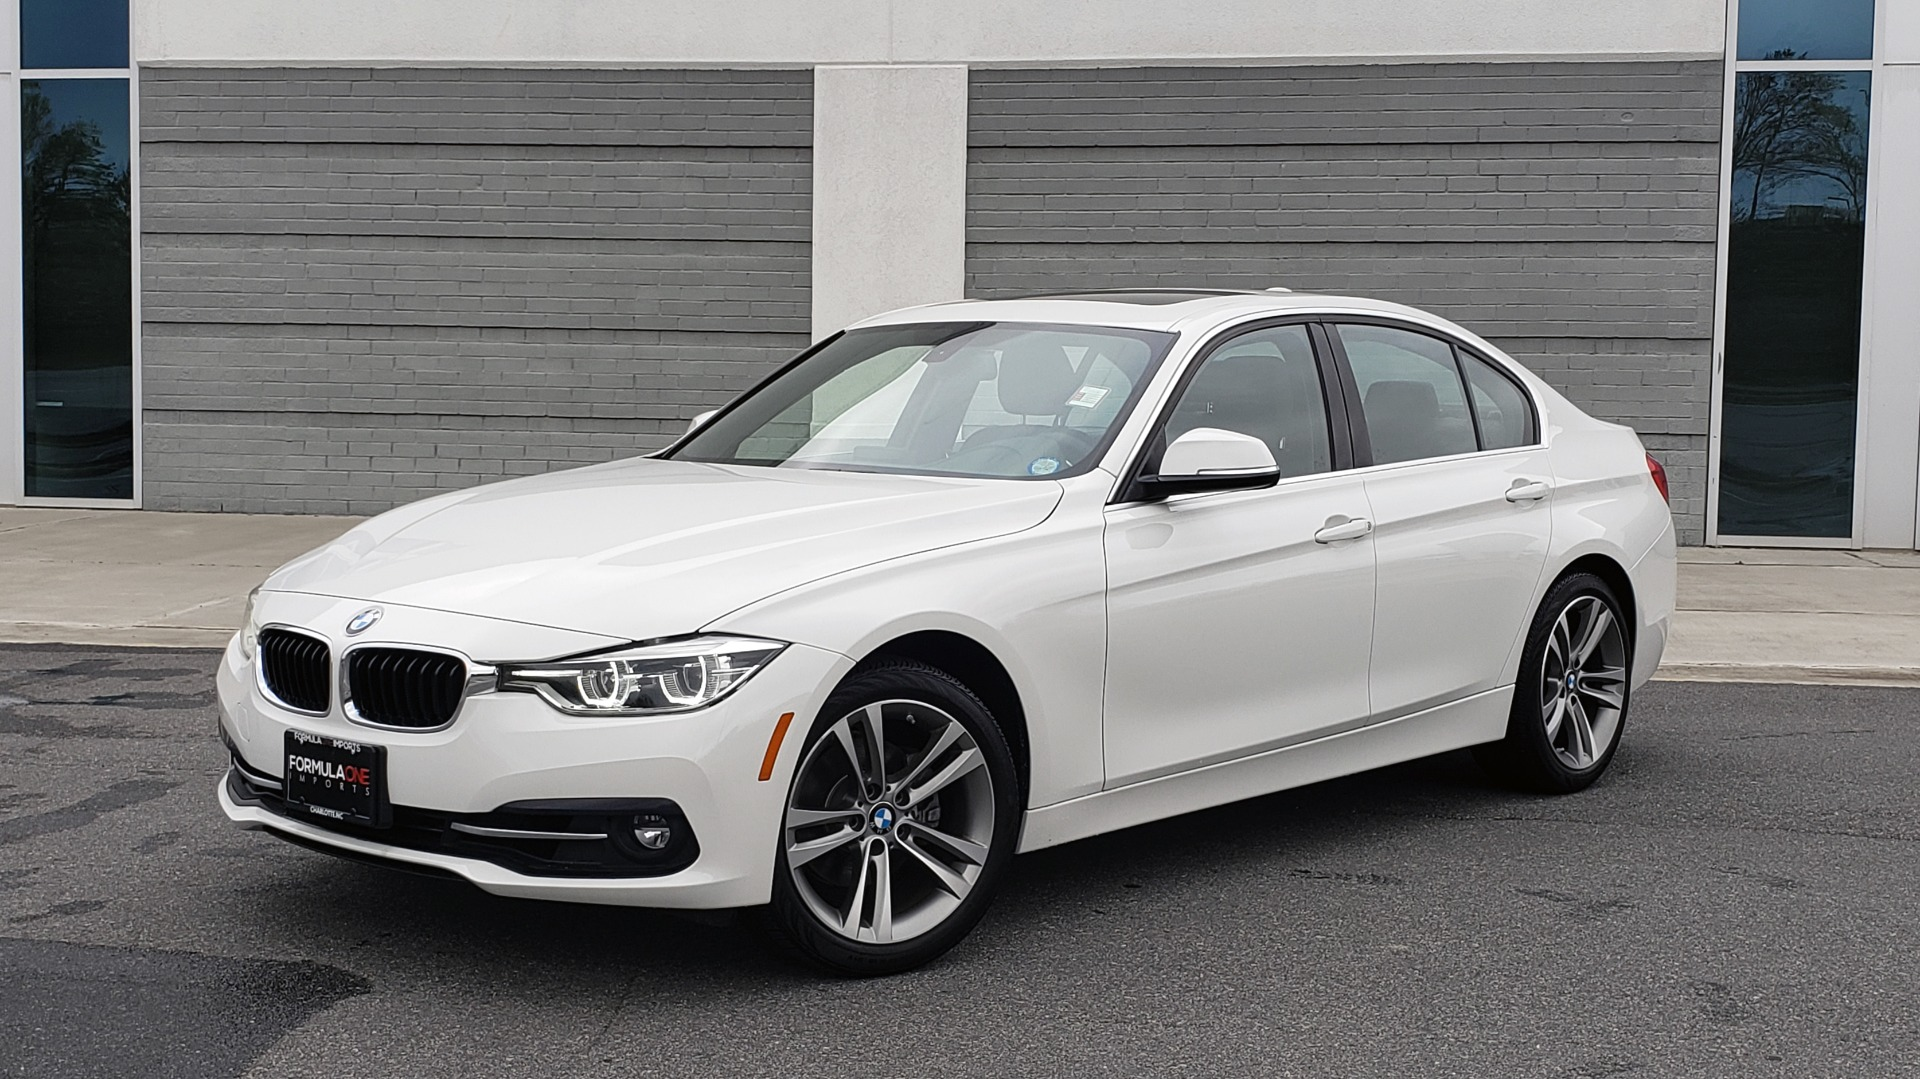 Used 2018 BMW 3 SERIES 330I XDRIVE / CONV PKG / SUNROOF / HTD STS / REARVIEW for sale $24,795 at Formula Imports in Charlotte NC 28227 1